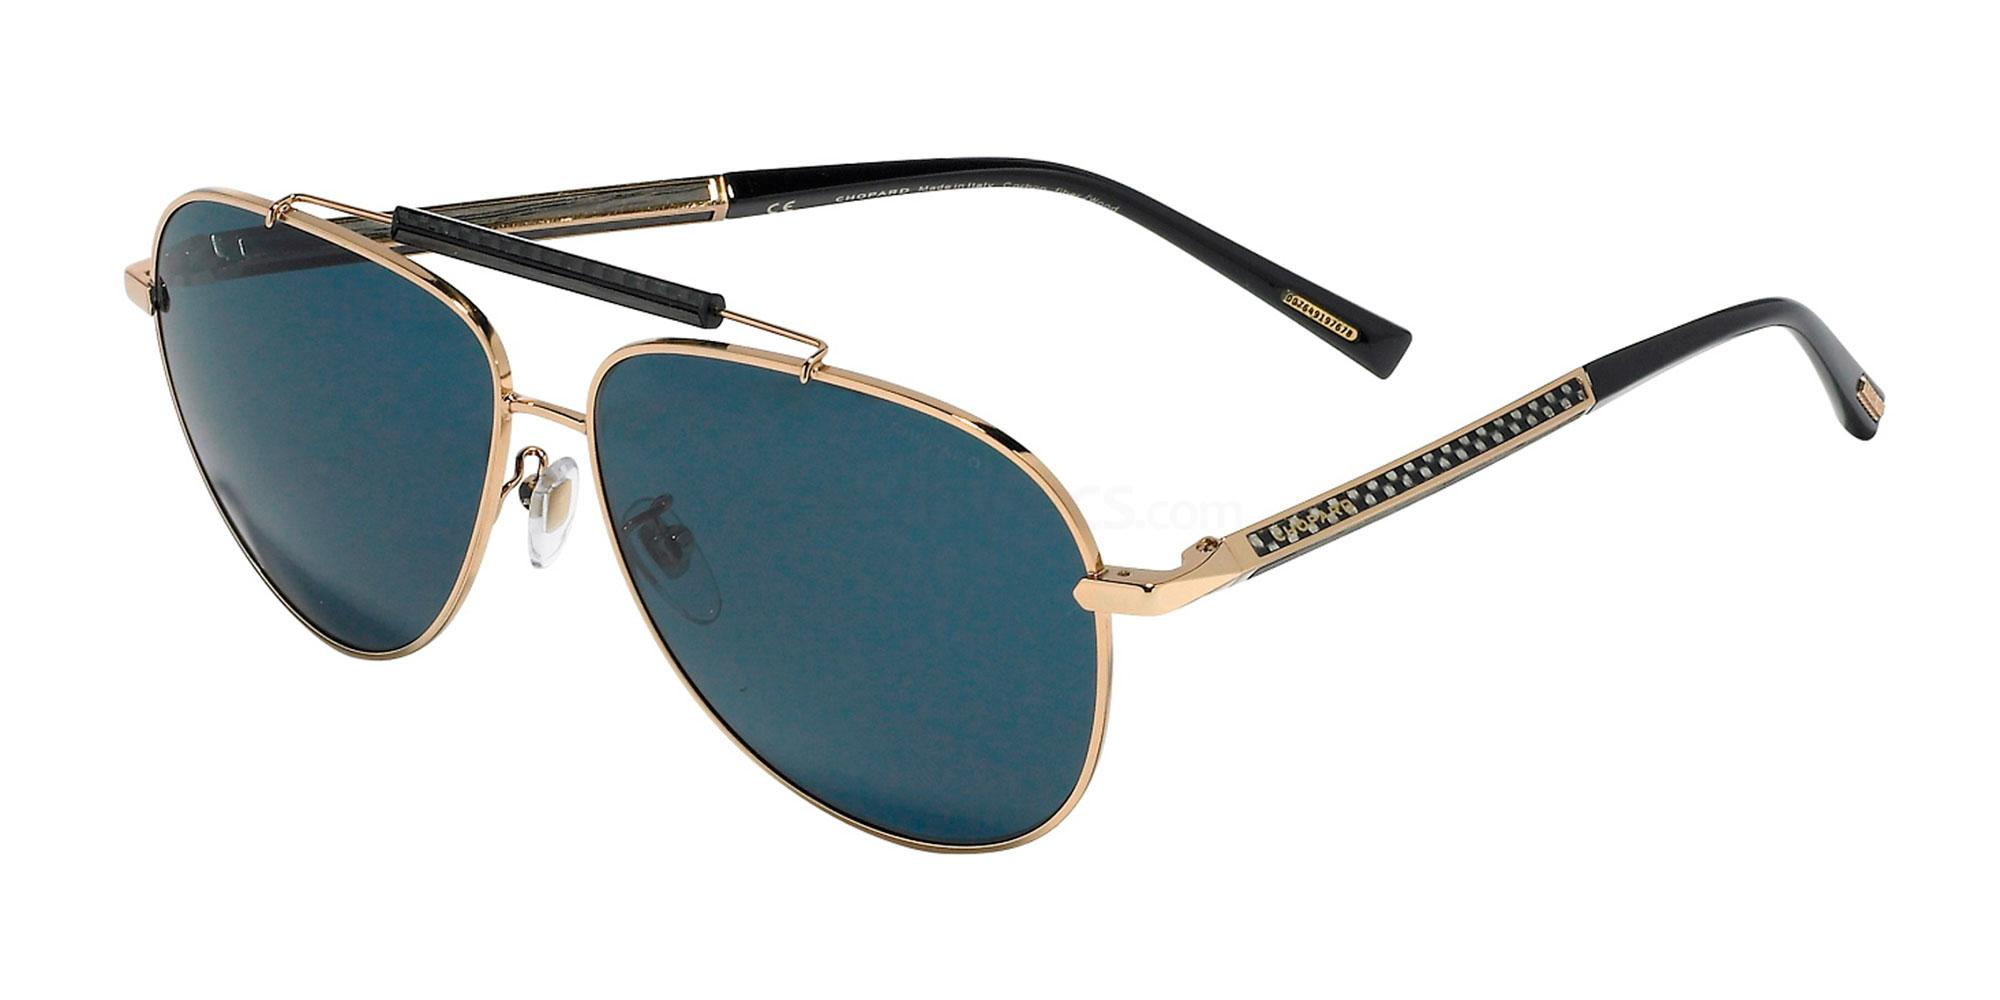 300P SCHC94 Sunglasses, Chopard